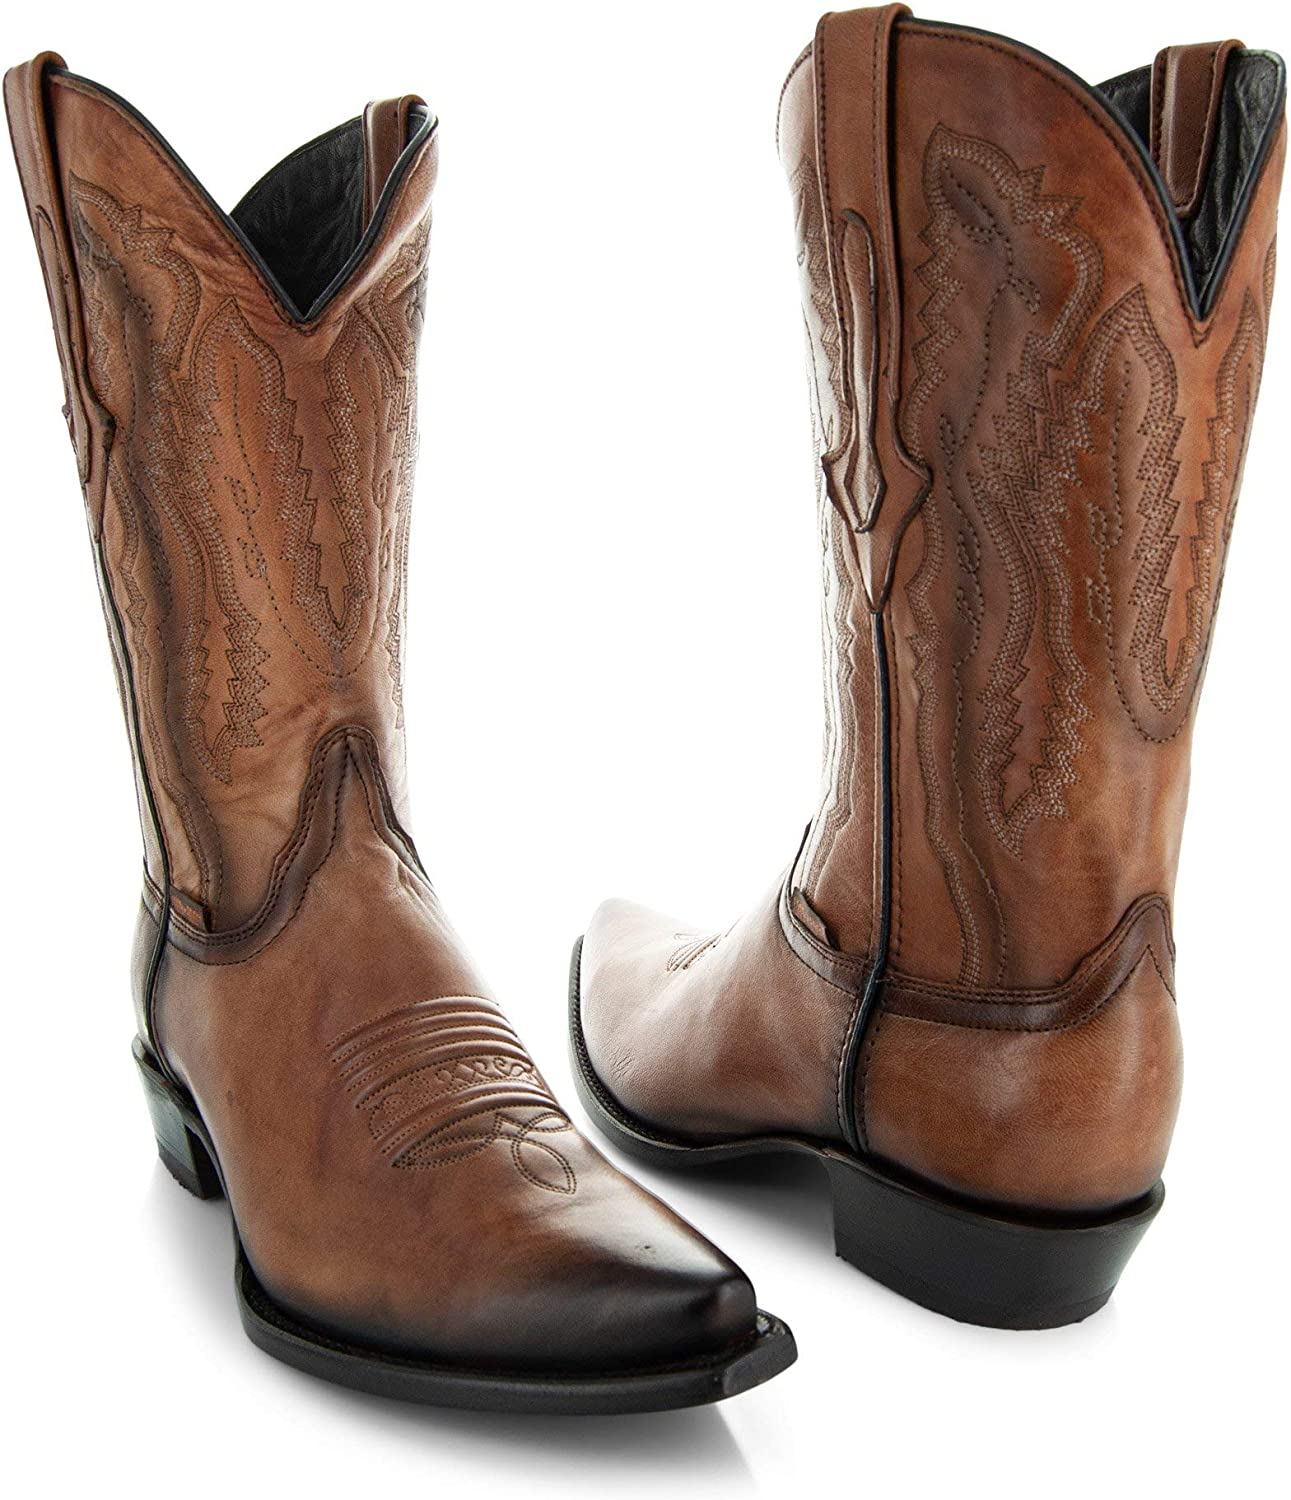   Soto Boots Mens Burnished Snip Toe Cowboy Boots H50030   Western